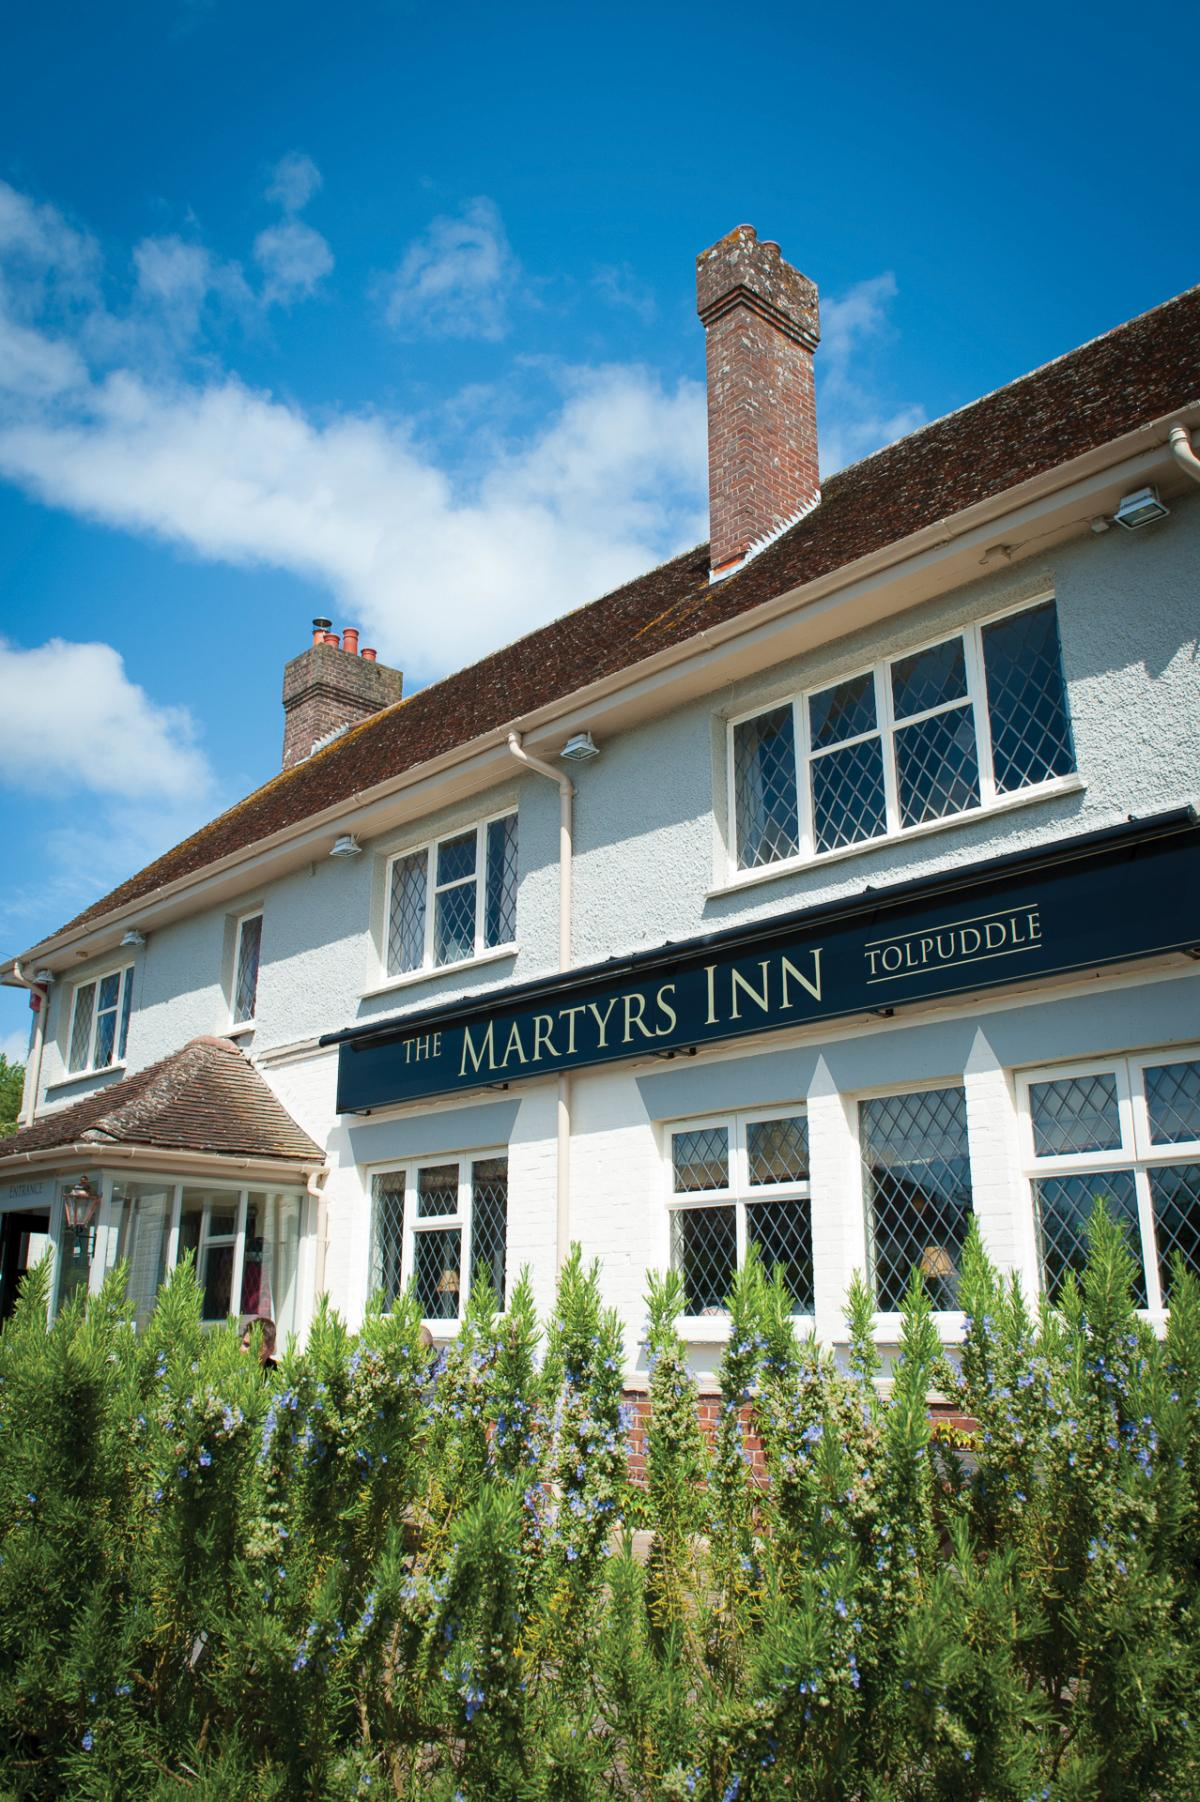 Images from Martyrs Inn